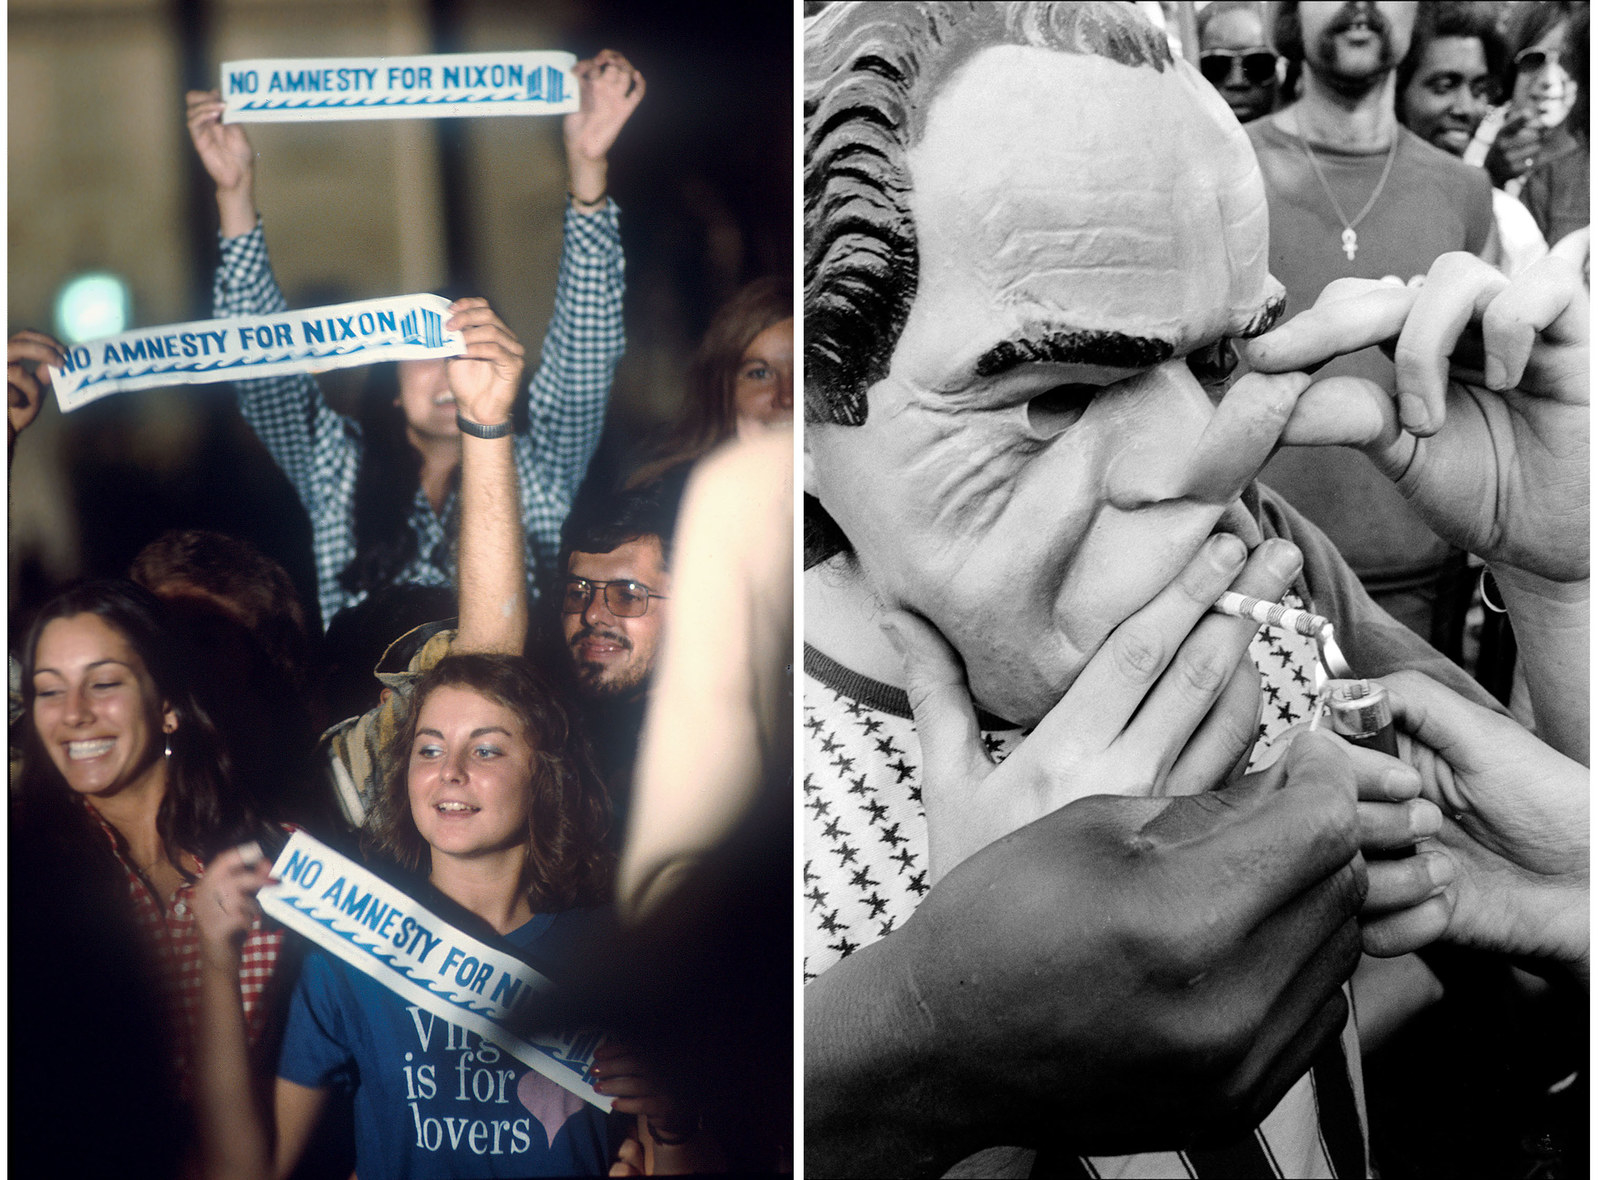 """Left: Anti-Nixon demonstrators hold up """"No Amnesty for Nixon"""" bumper stickers. Right: A man in a Nixon mask smokes a joint in New York City, 1974."""